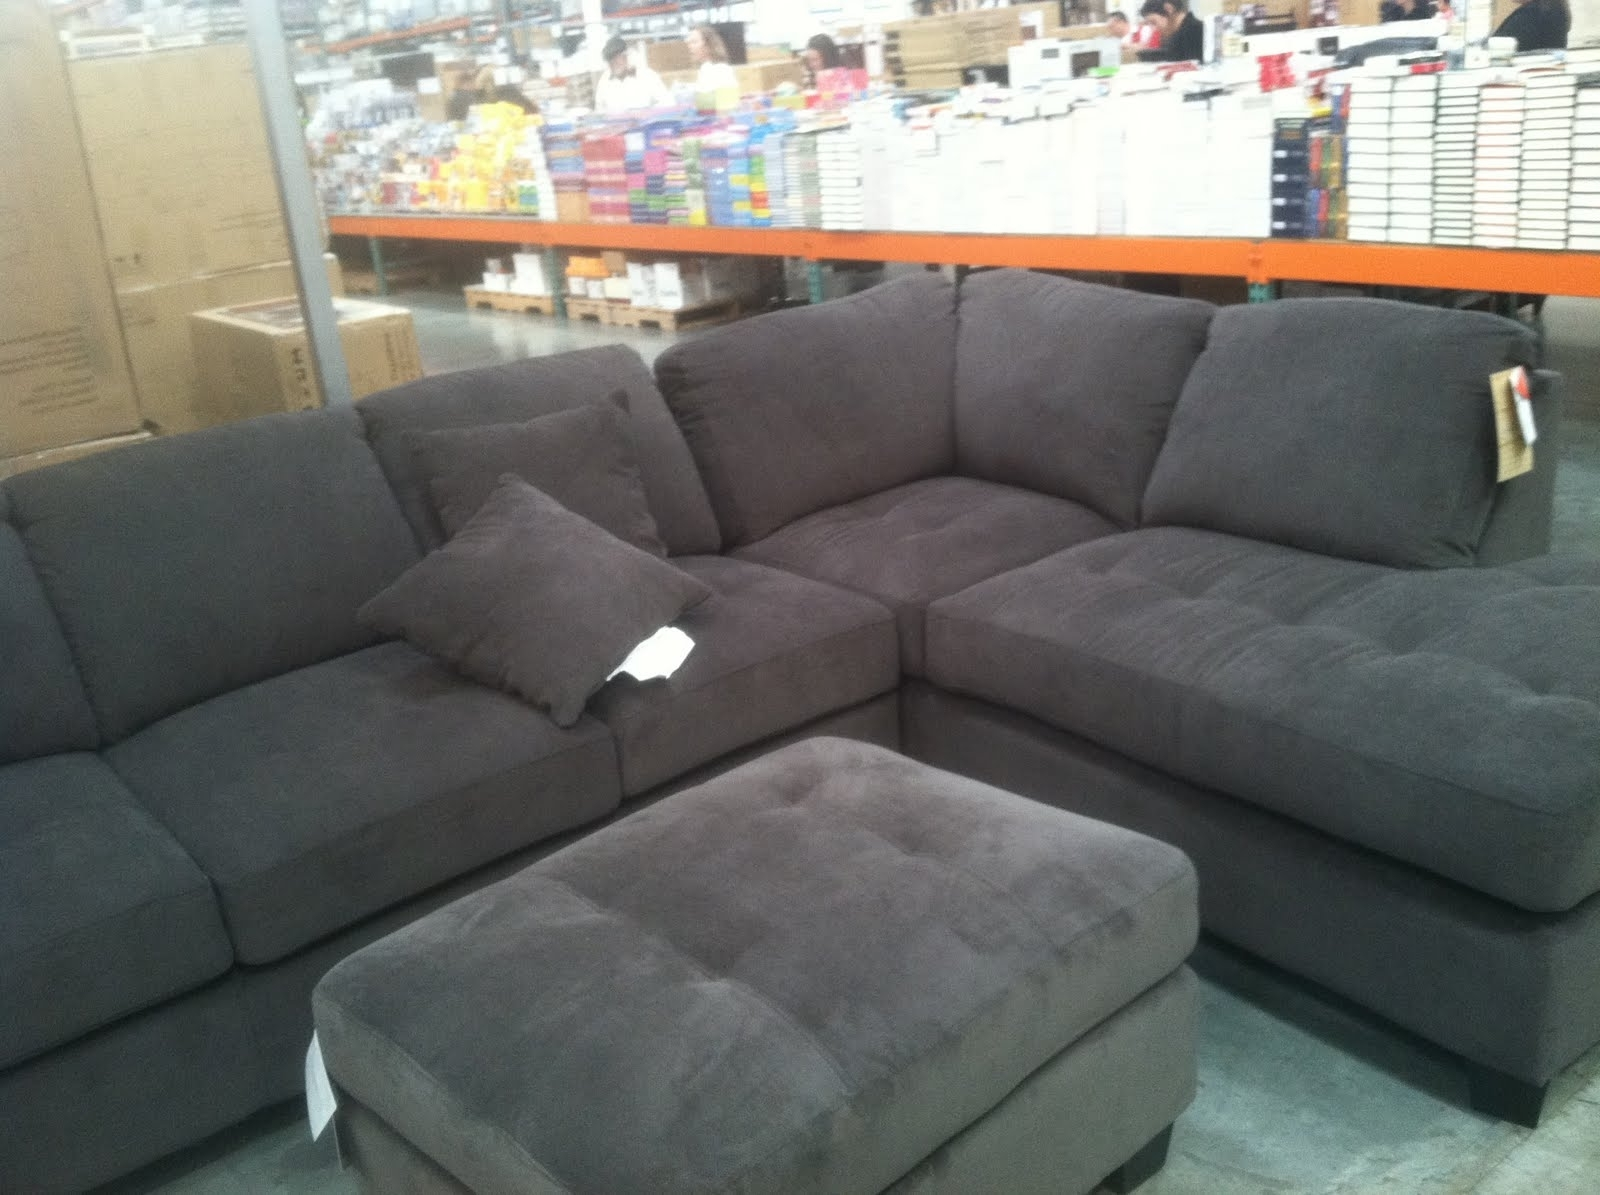 Best And Newest Fancy Gray Sectional Sofa Costco 53 Office Sofa Ideas With Gray Throughout Sectional Sofas At Costco (View 2 of 20)